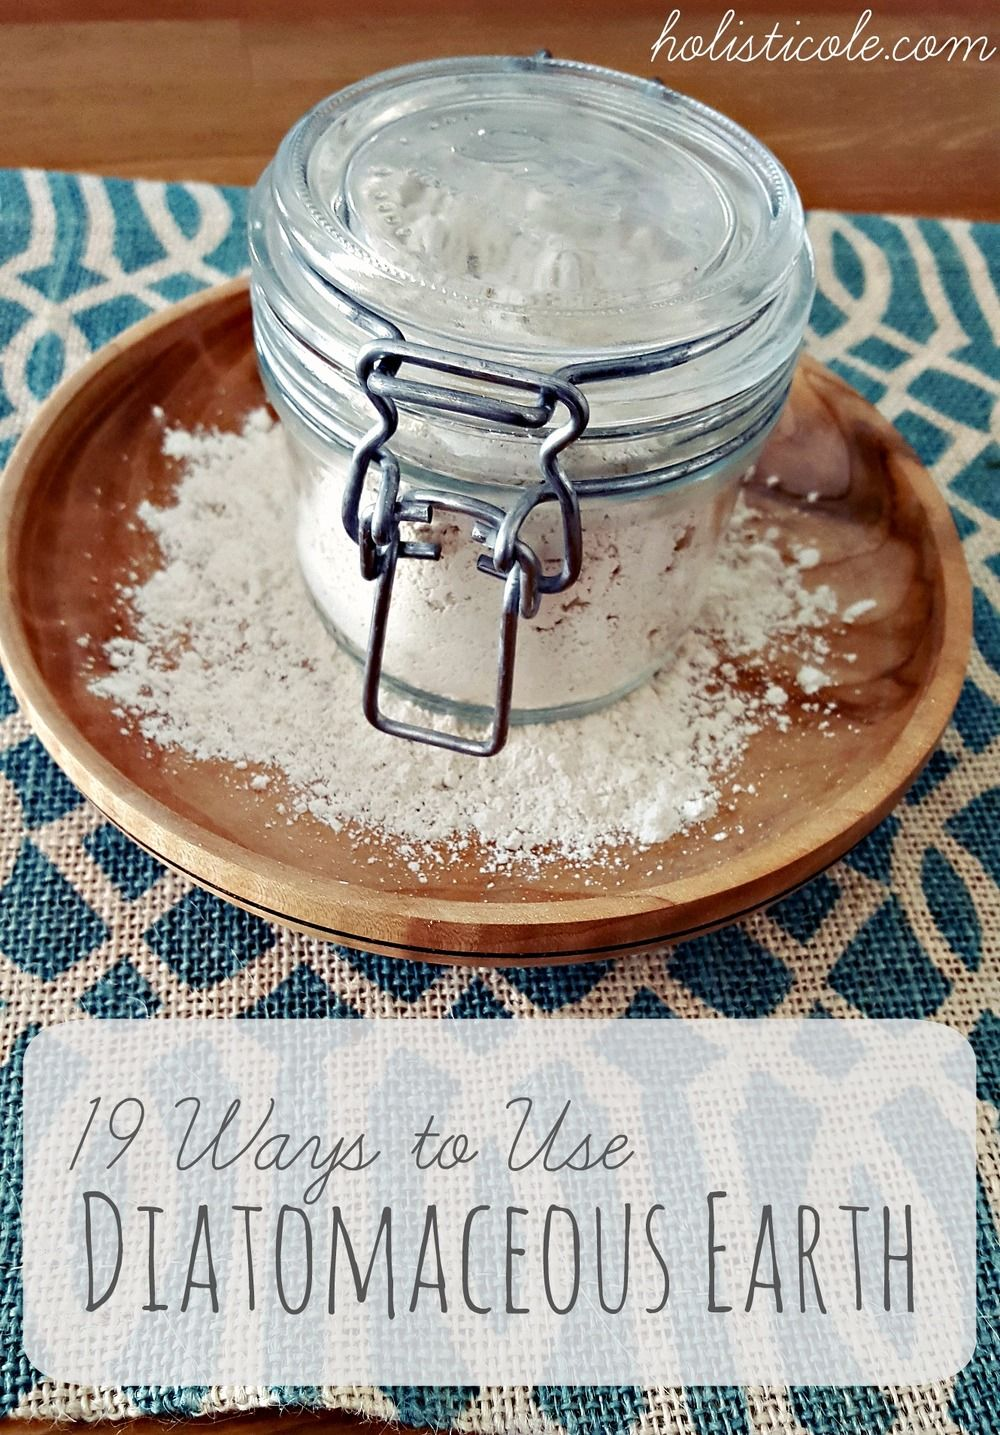 13 Ways to Use Diatomaceous Earth Medicinal Plants